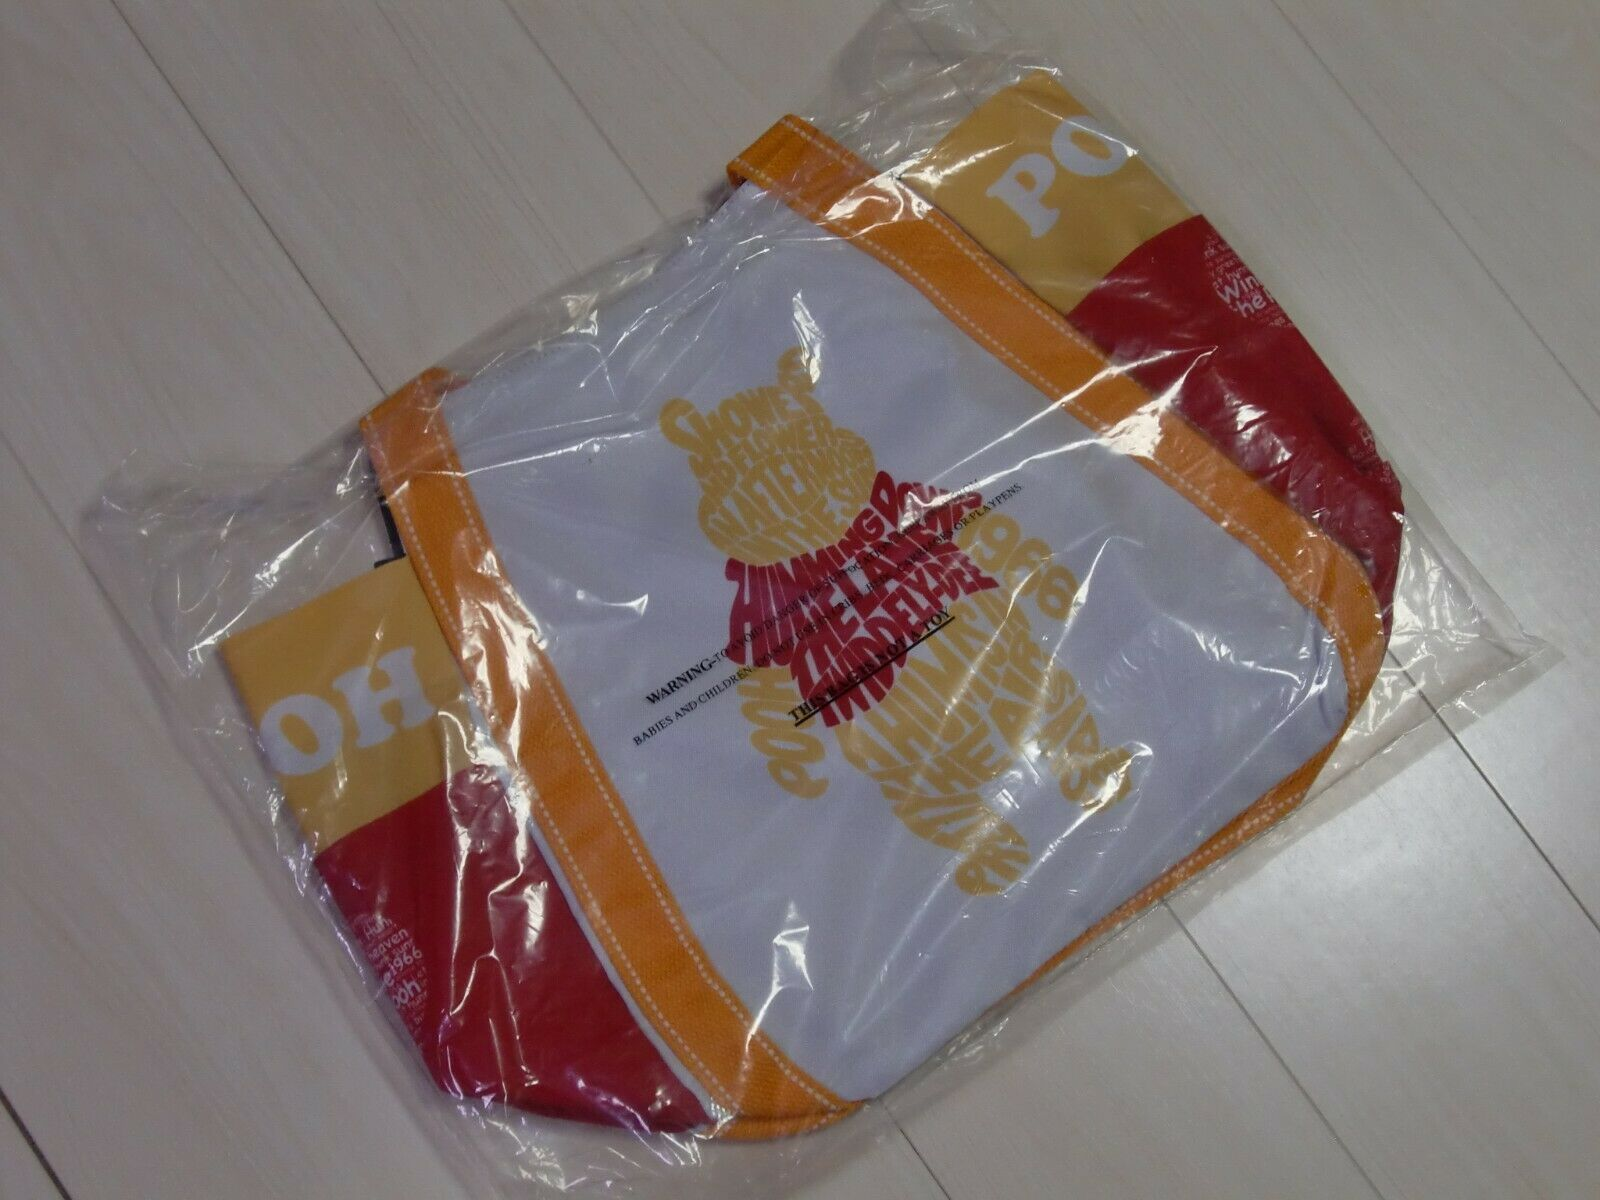 Disney Tote Bag Balloon Winnie the Pooh Magnet A 3 Size DPO-06 Limited Japan image 9